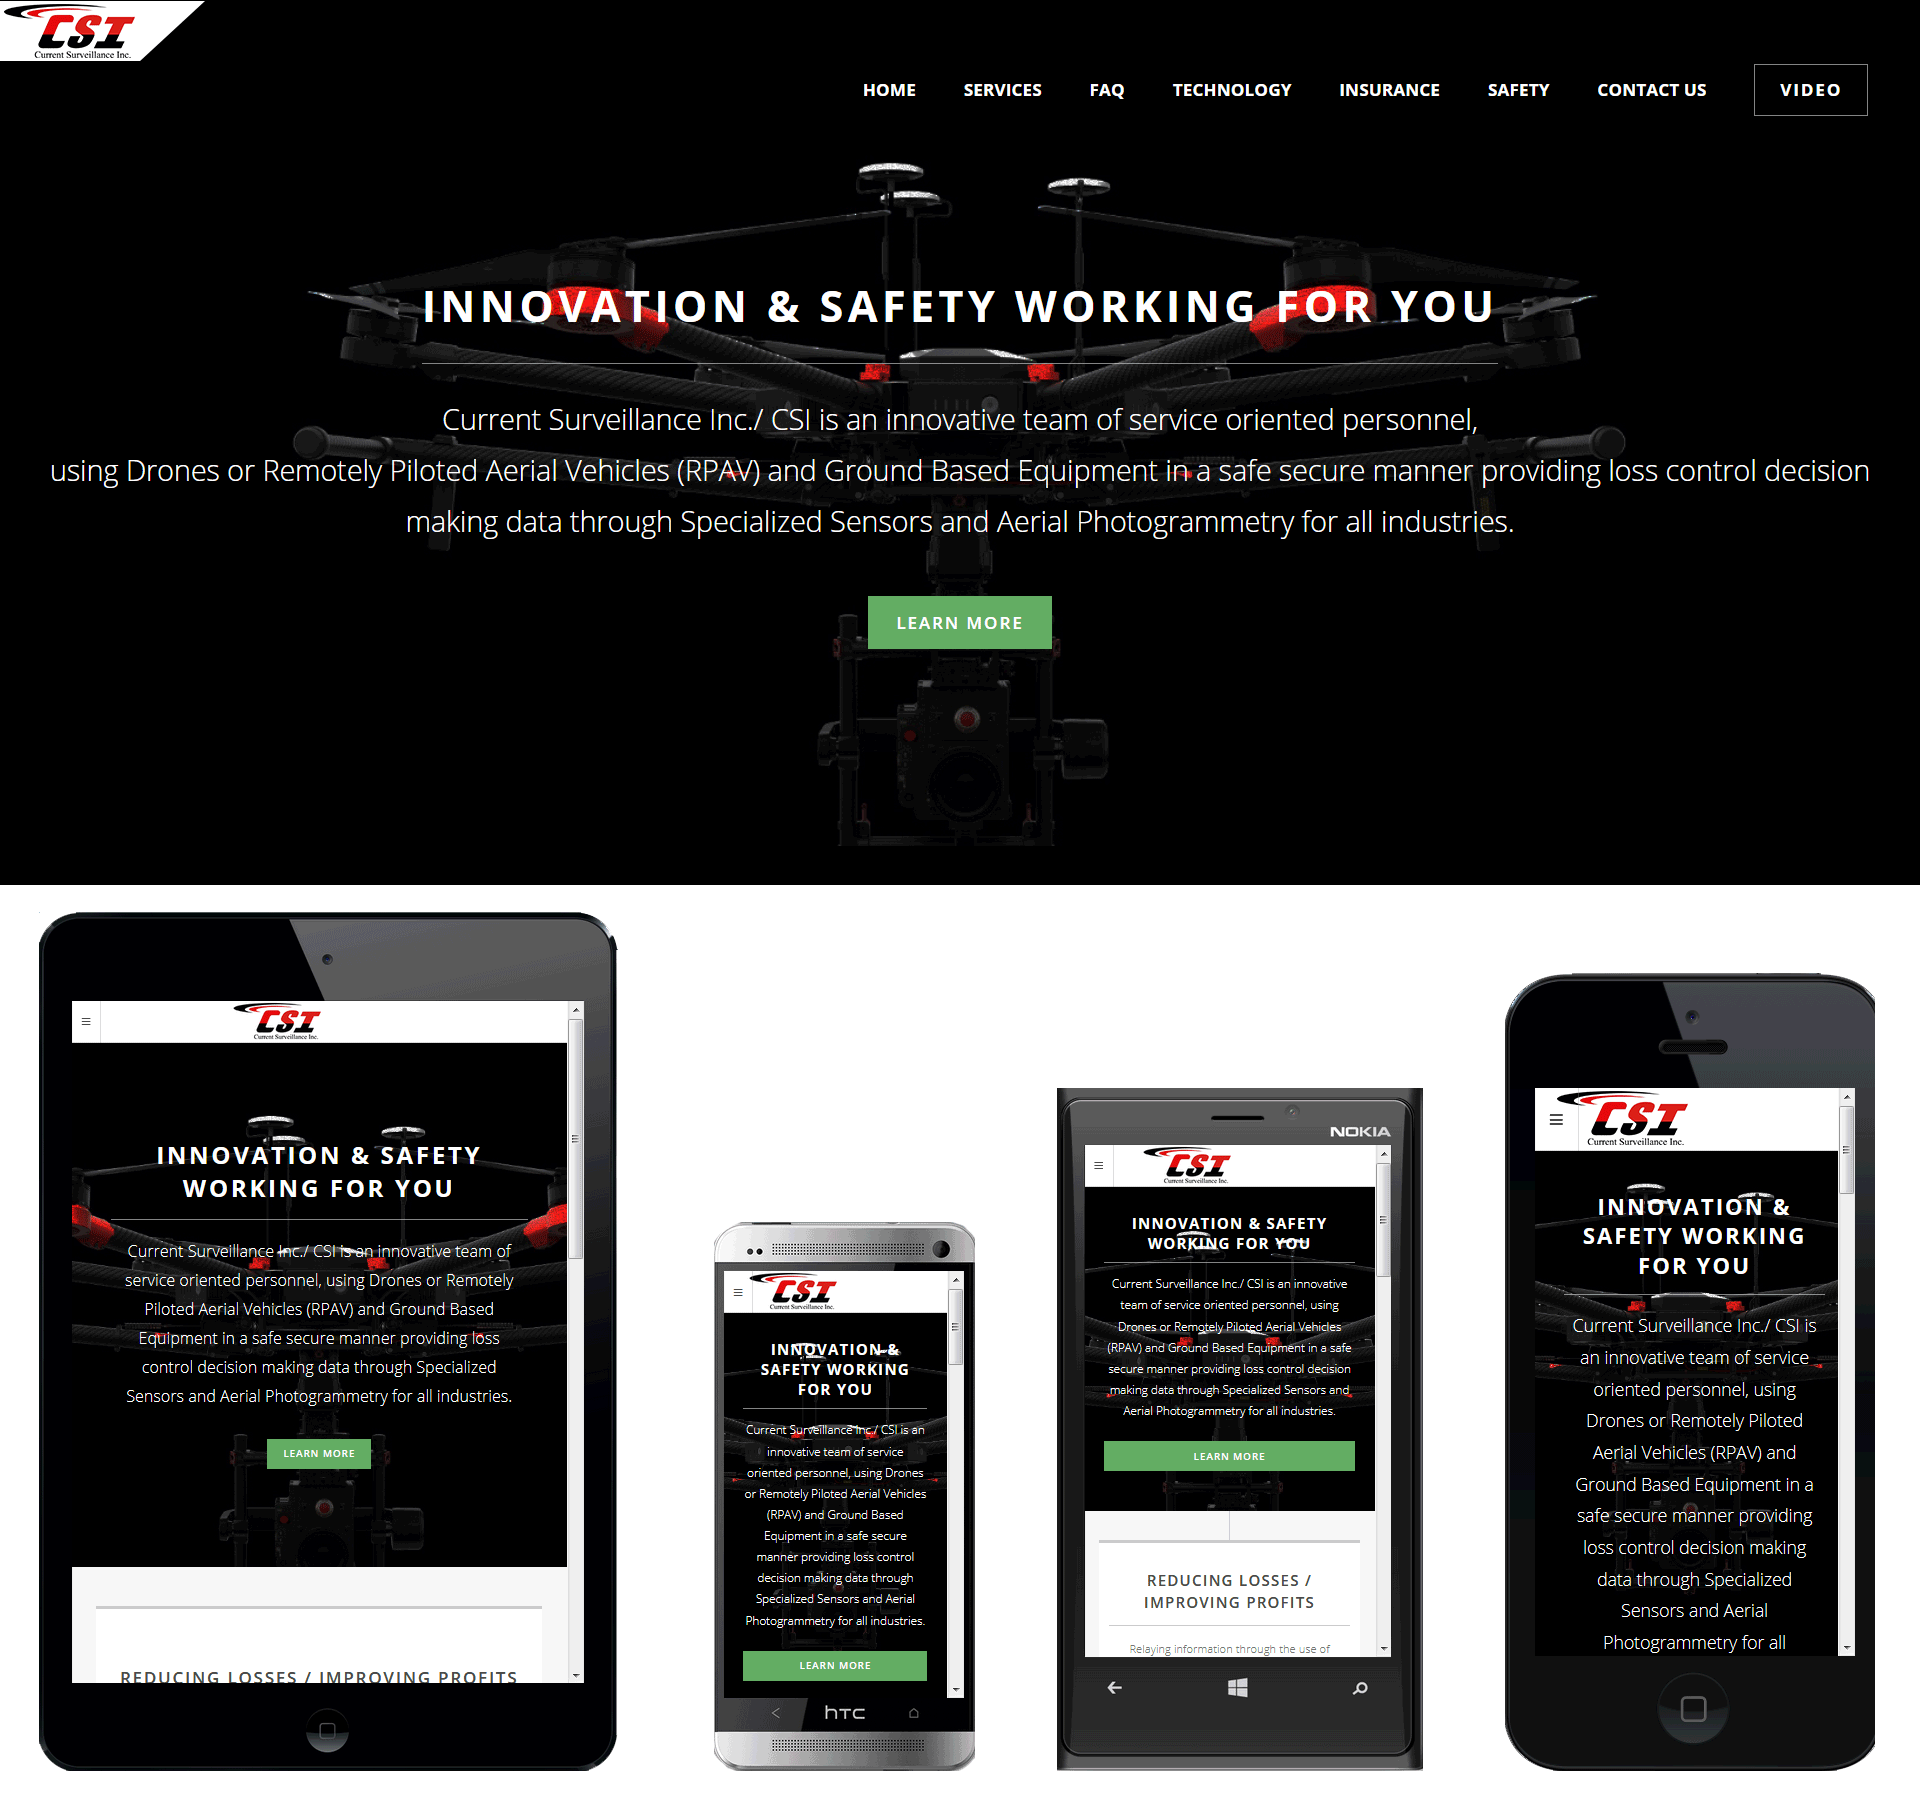 Photon Motion Inc. Website Design and Development